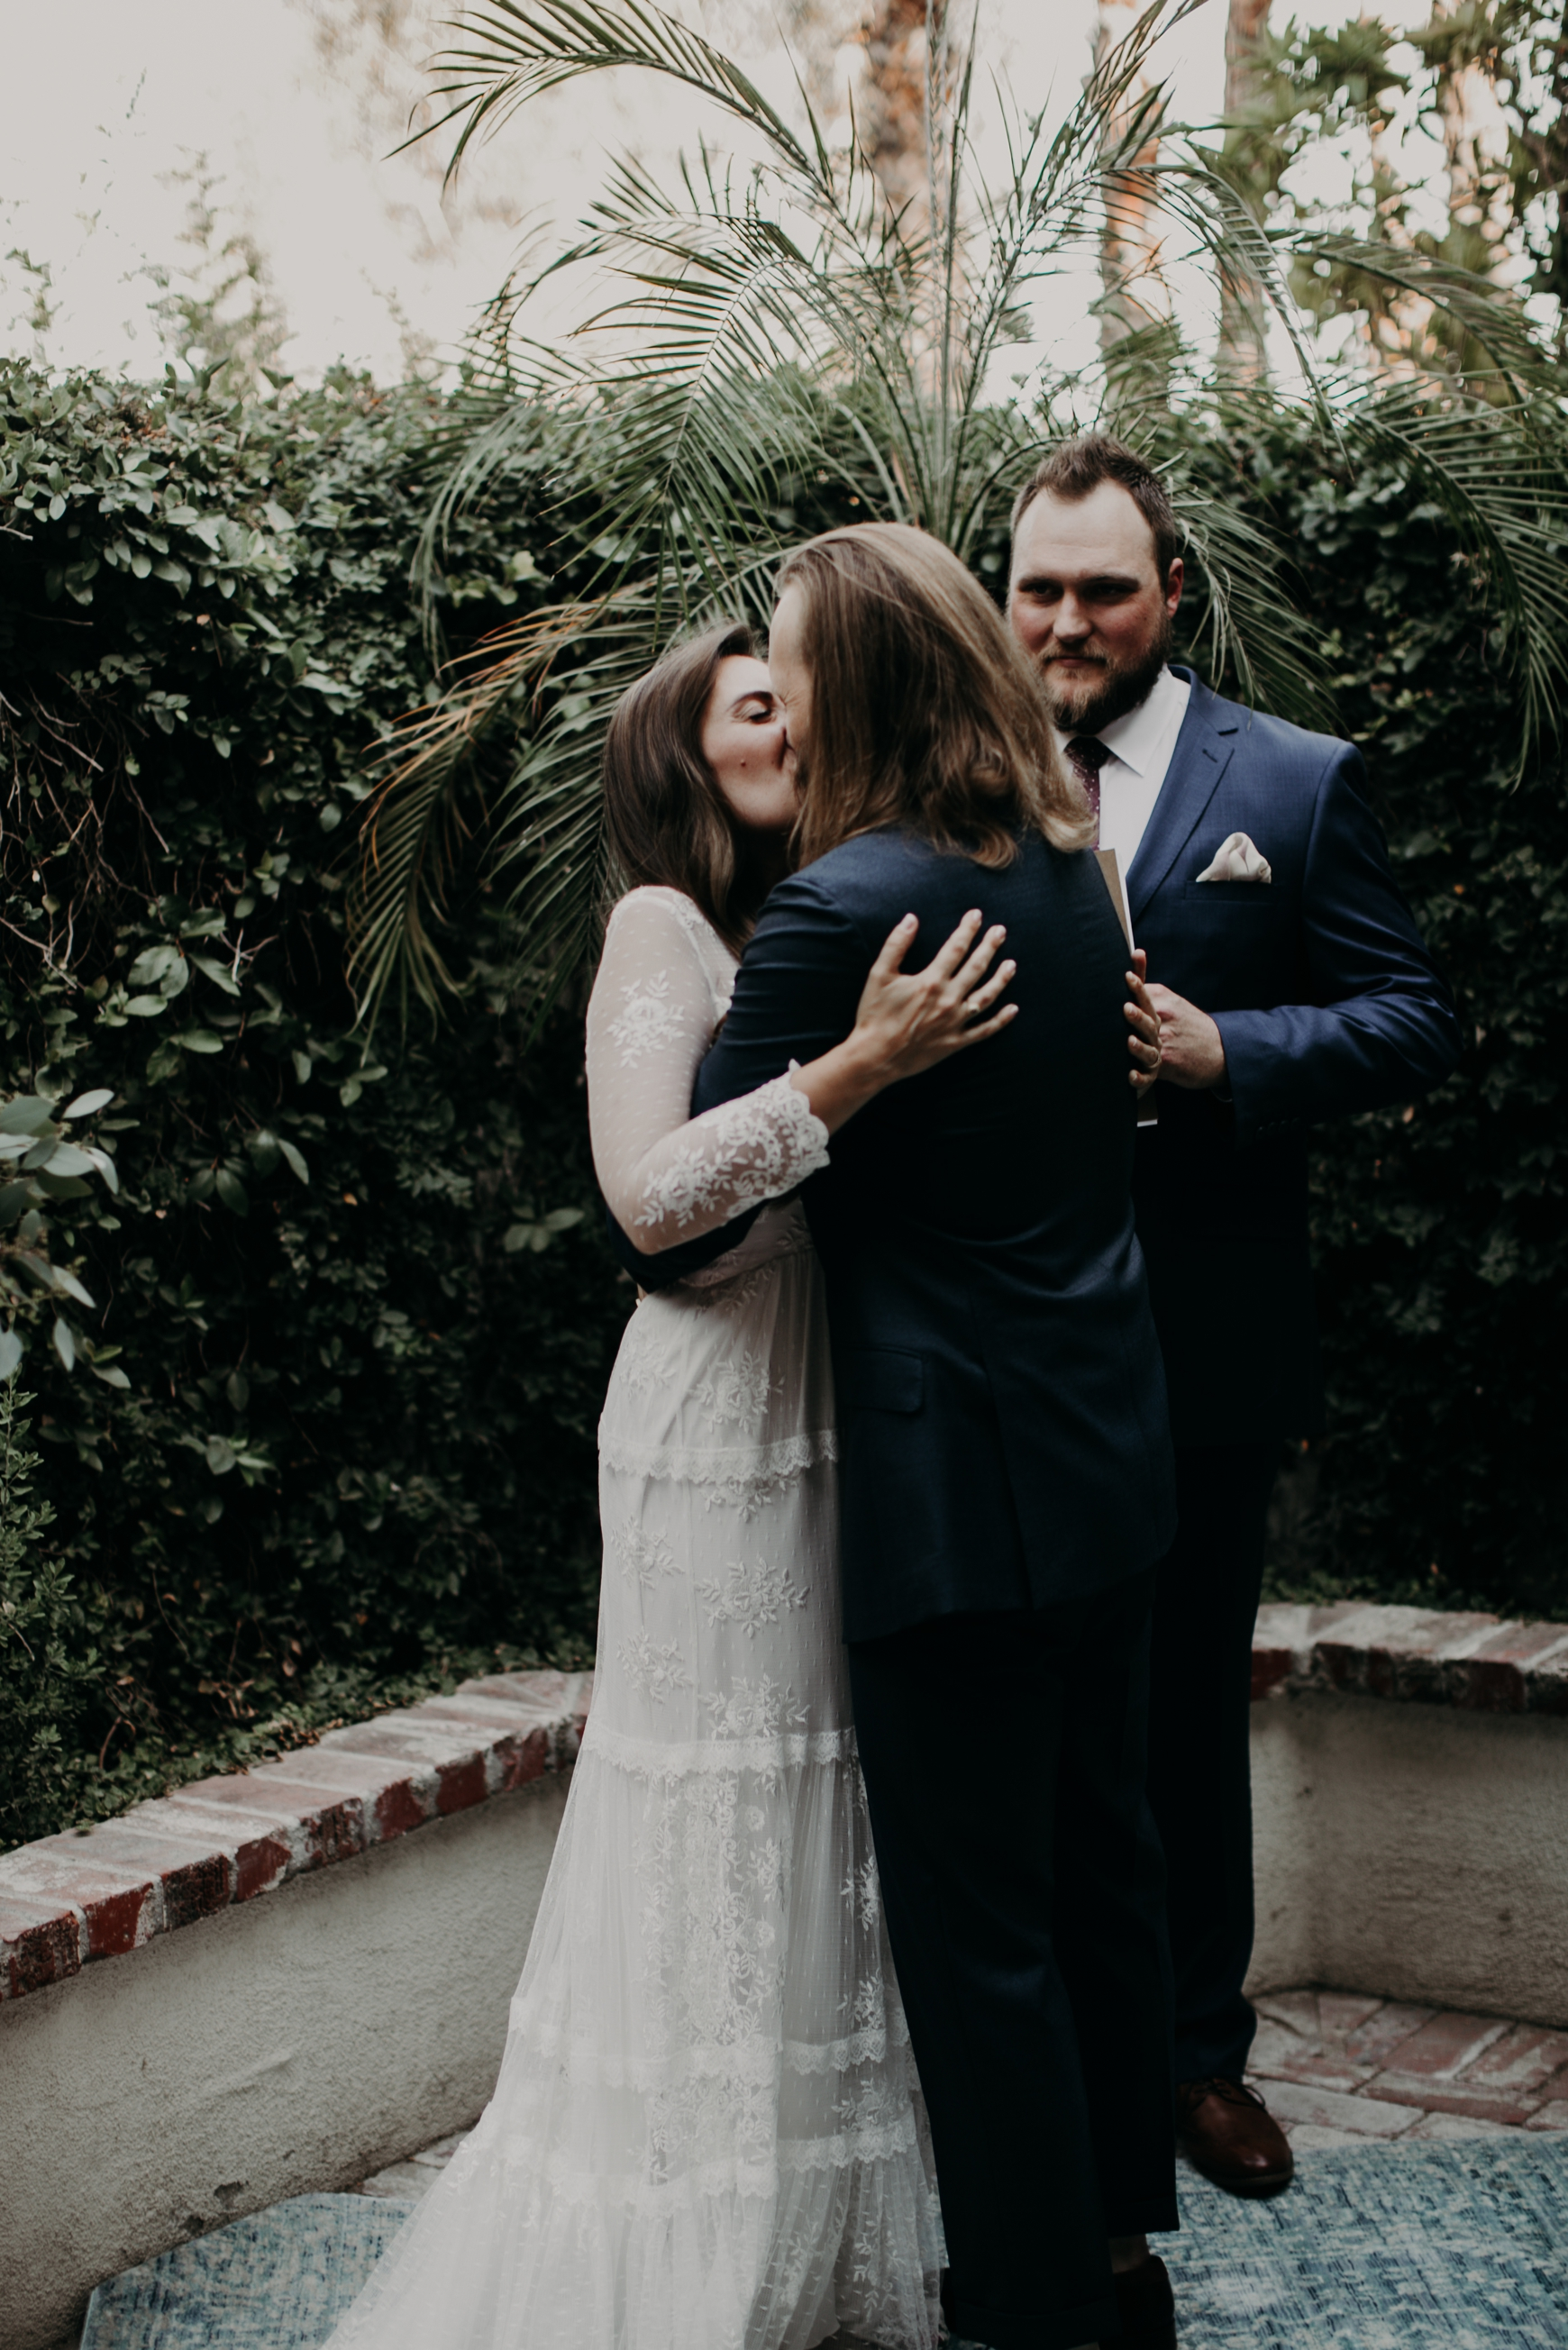 The Colony Palms Hotel Palm Springs Wedding Jaclyn & Tyson Emily Magers Photography-220.jpg